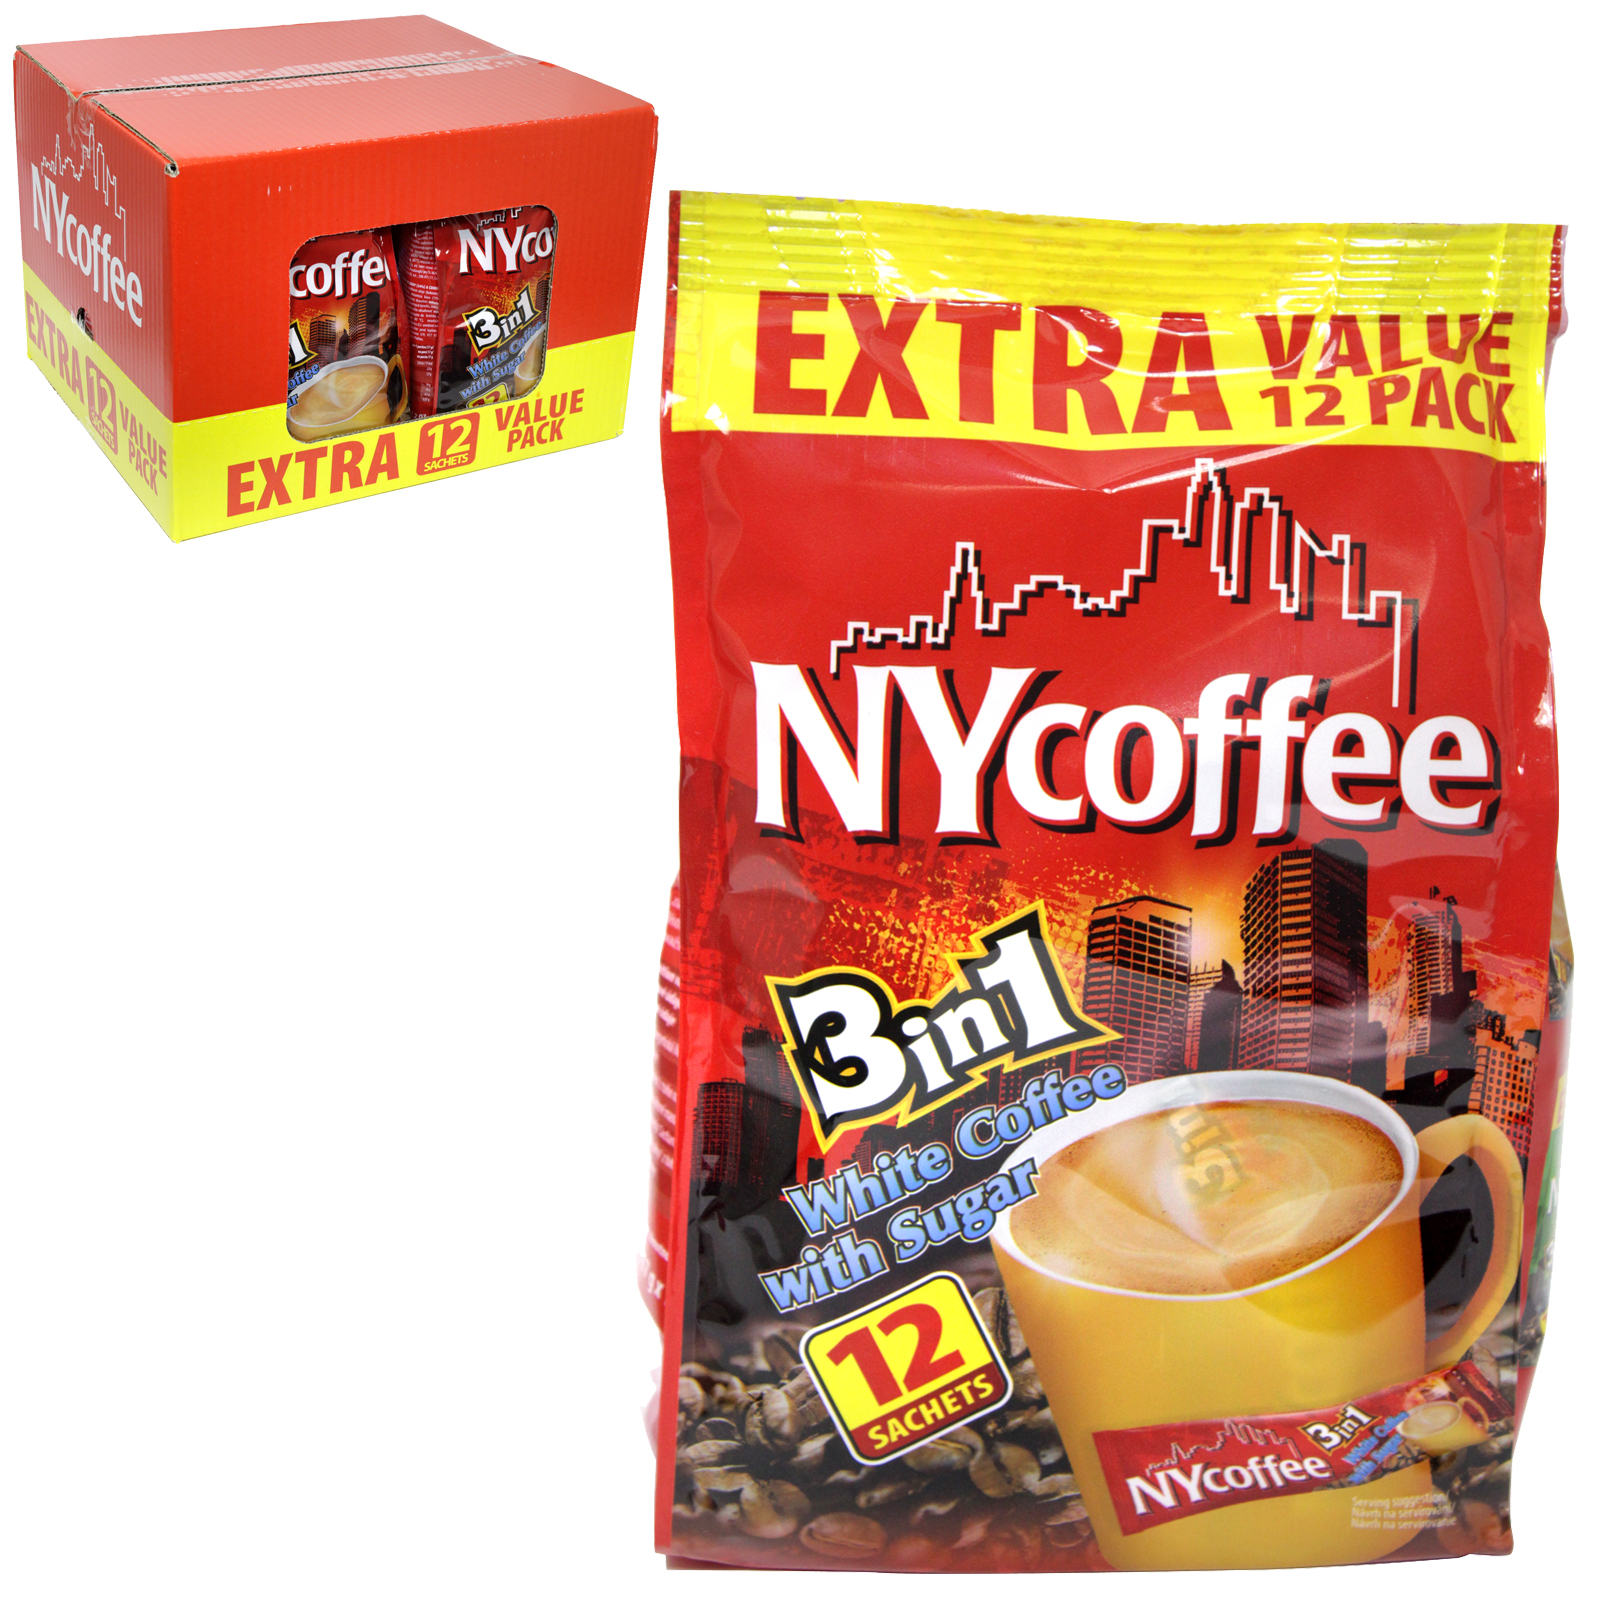 NY COFFEE 3IN1 12 + 2 FOC SACHET PACK X10